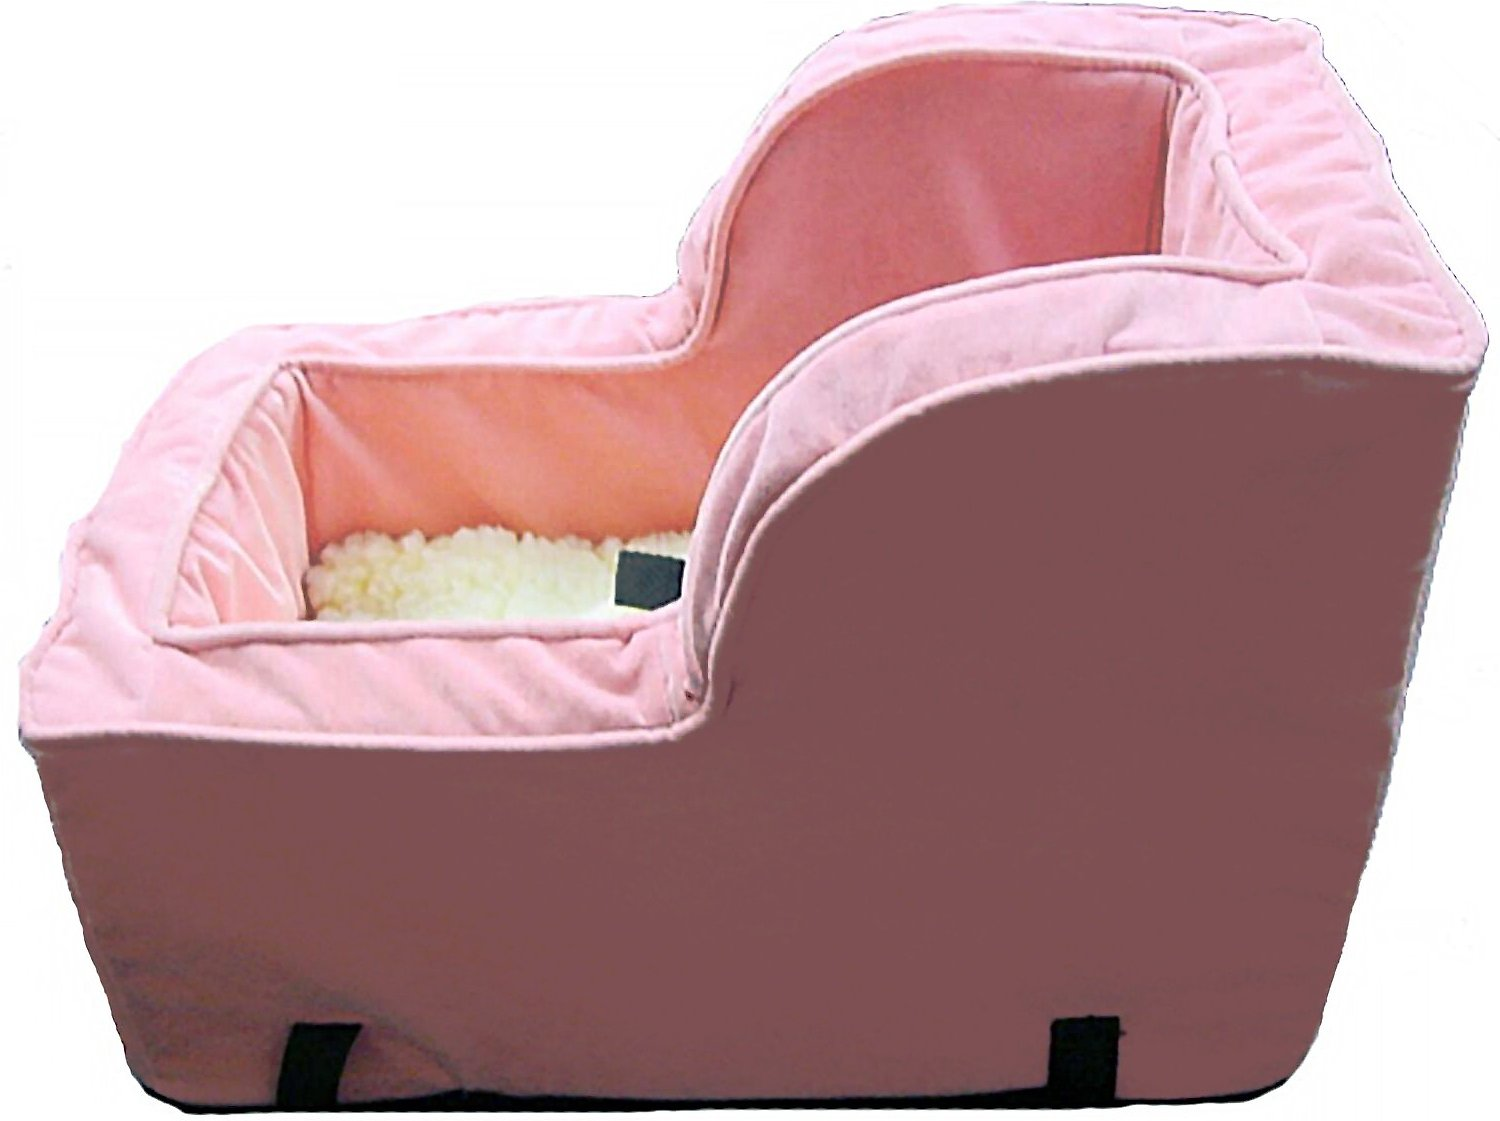 snoozer pet products luxury microfiber high back console dog cat car seat large pink. Black Bedroom Furniture Sets. Home Design Ideas